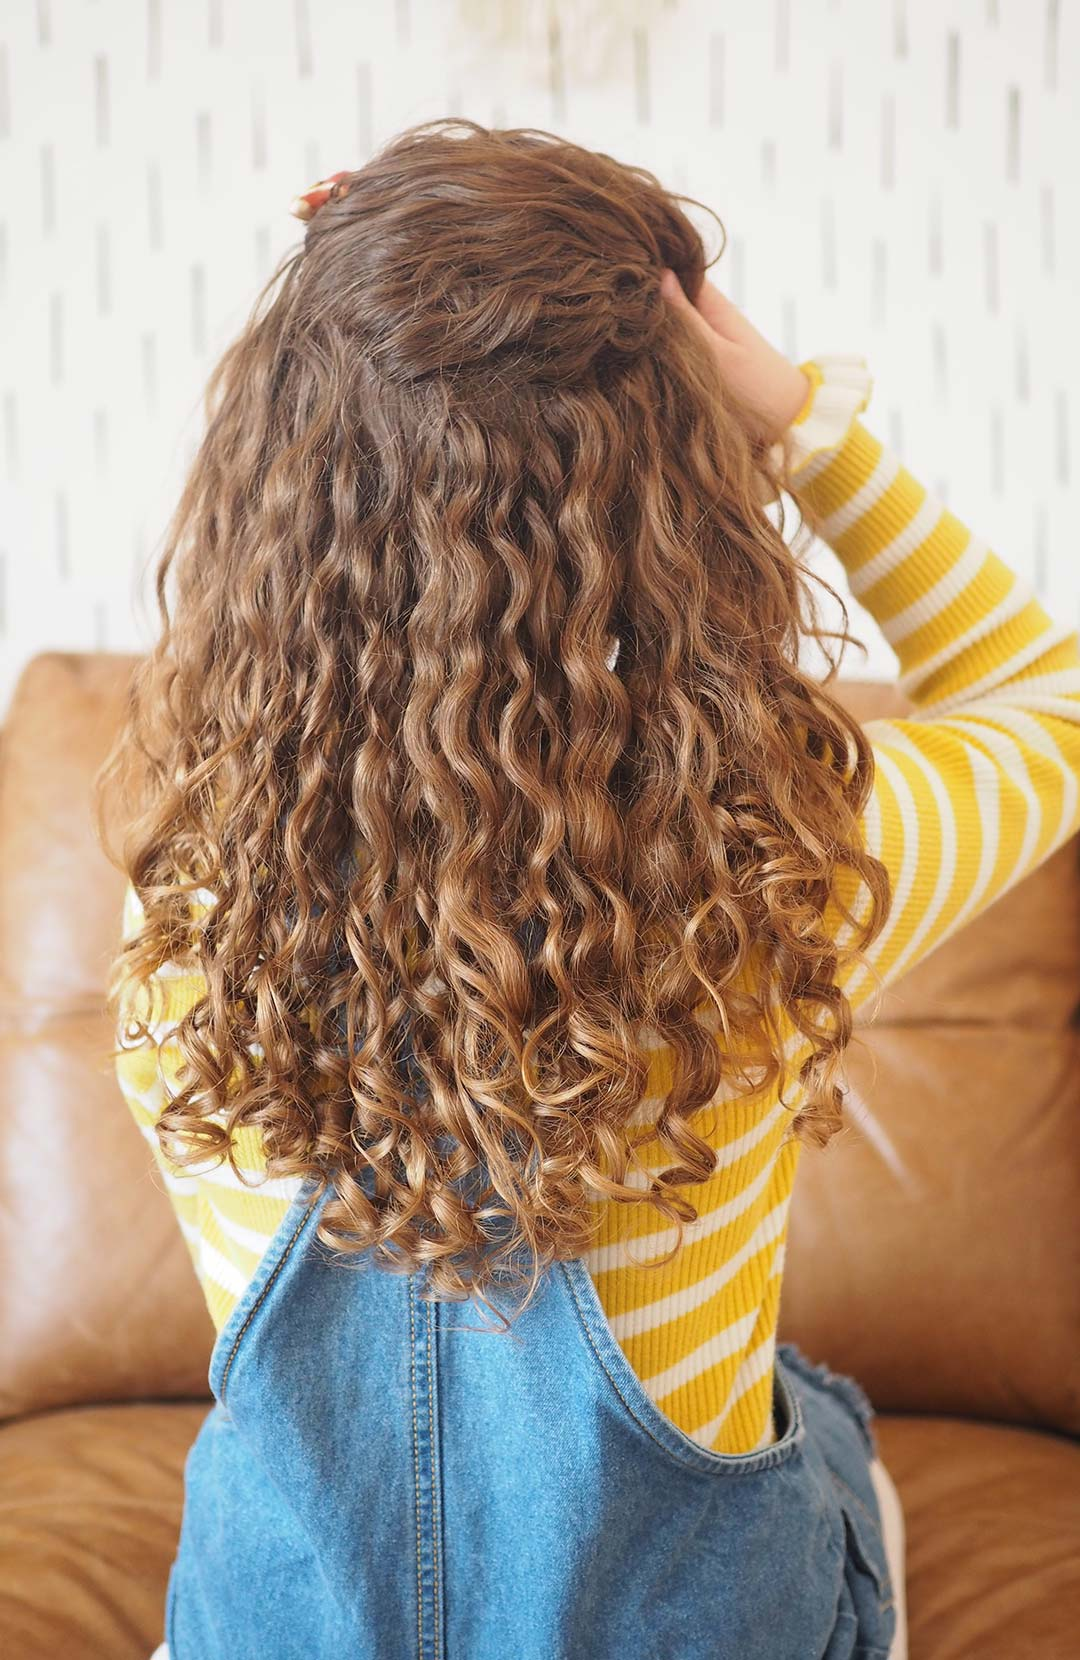 curly kids hair care products, tips and advice